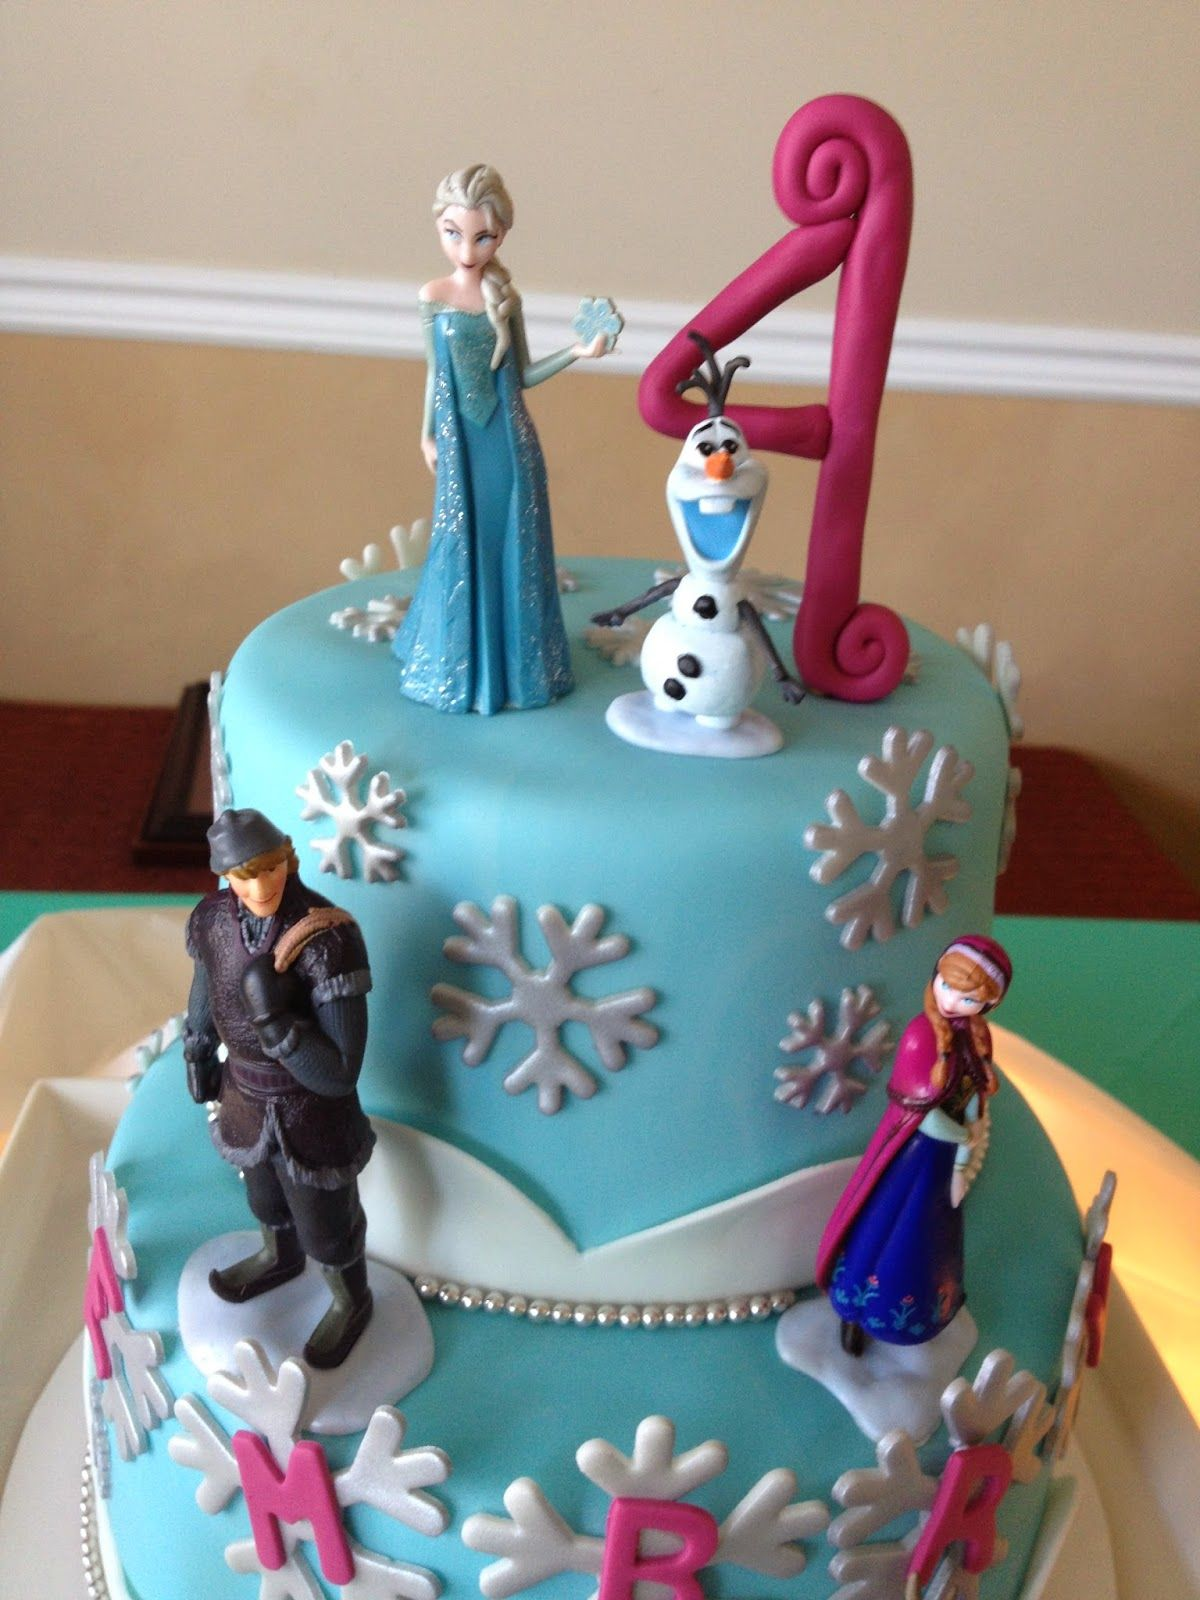 Disneys Frozen Birthday Cake Cupcake Ideas Frozen cake topper